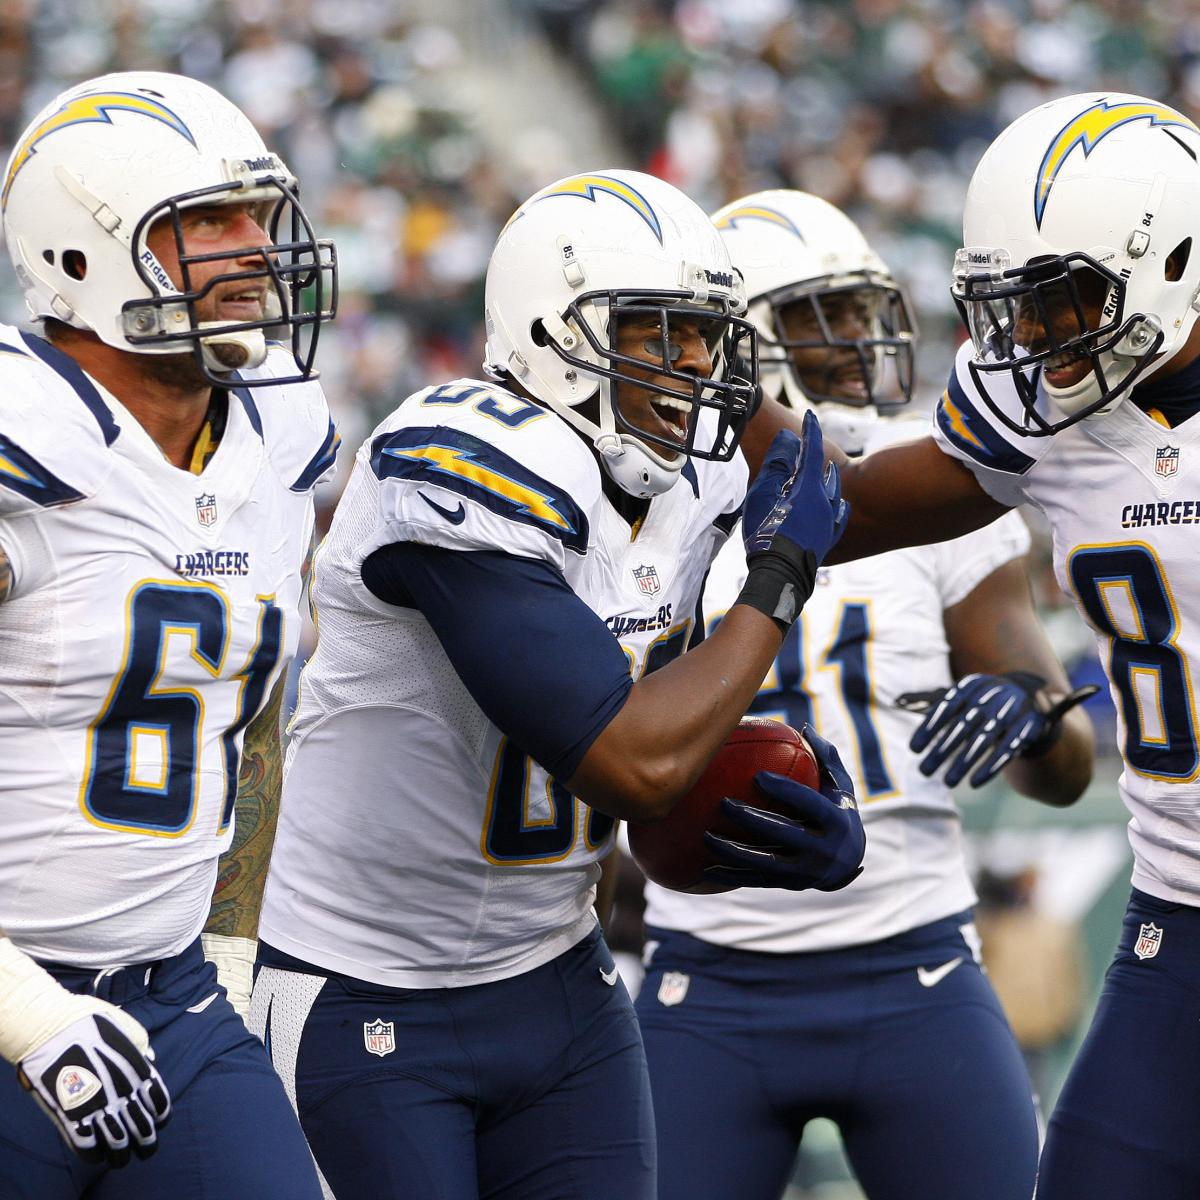 San Diego Chargers Bleacher Report: Grading The Strength Of San Diego Chargers' Roster Heading